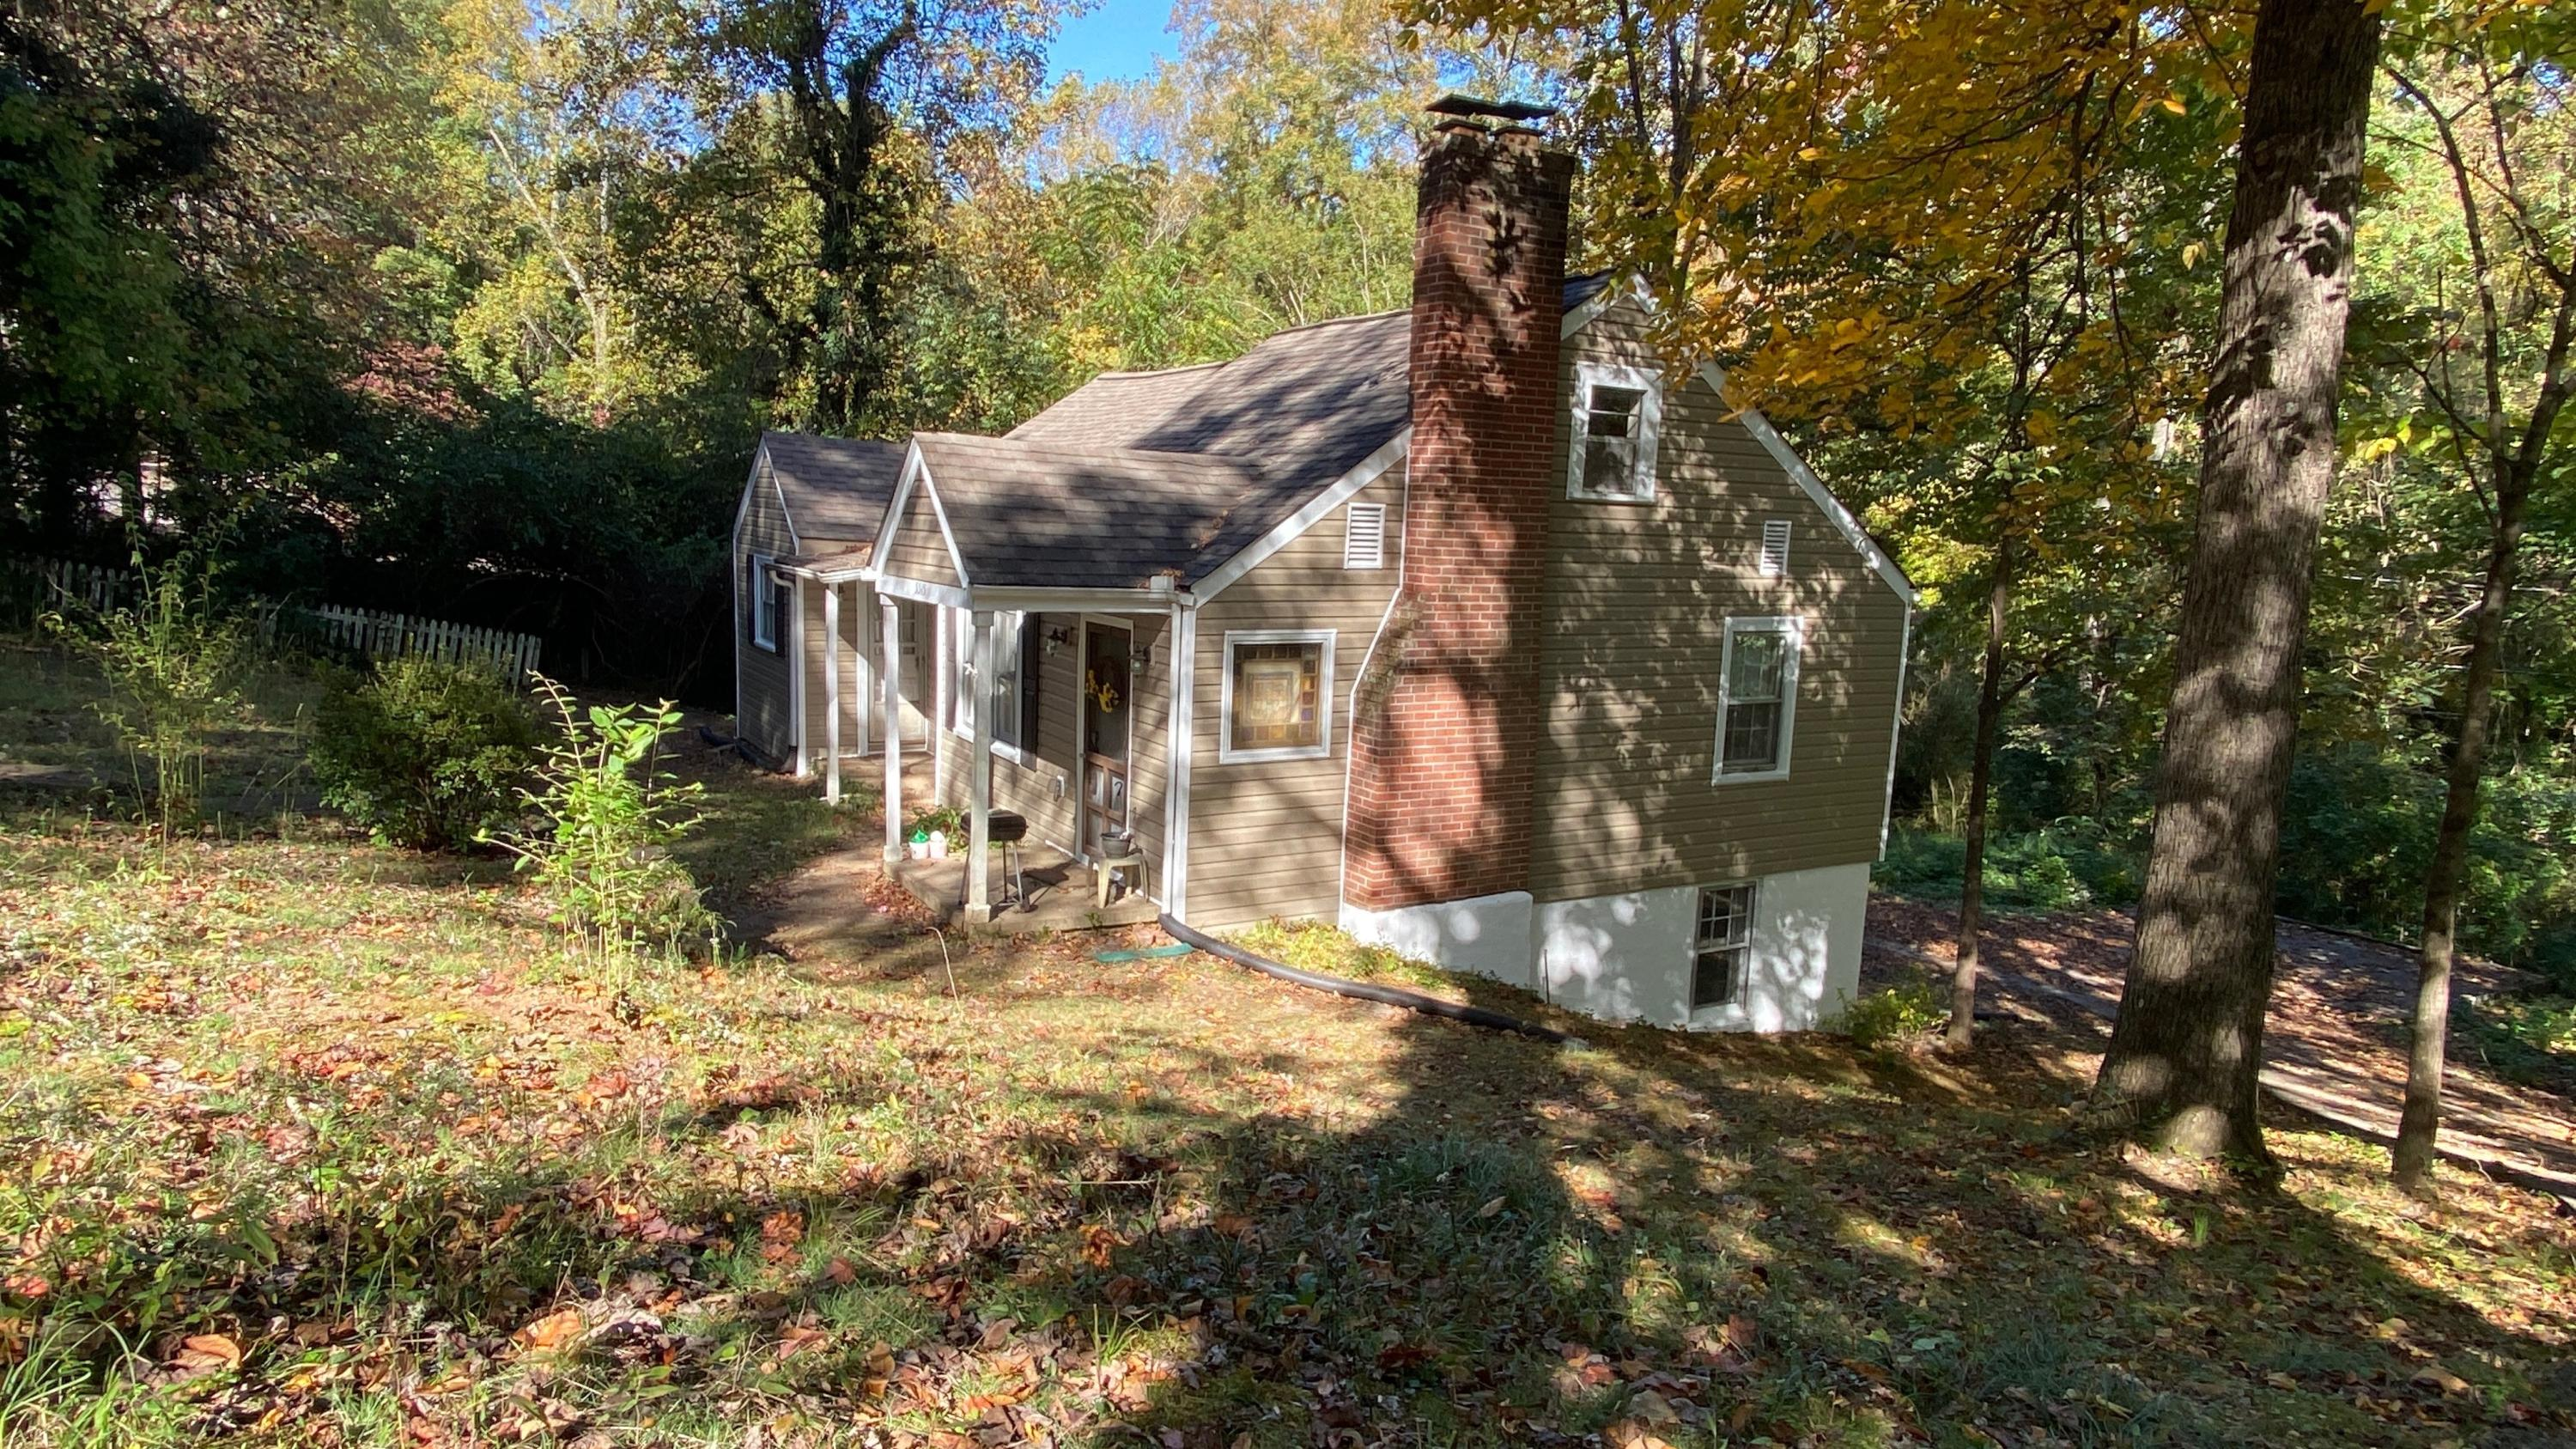 5515 Cedar Heights Rd, Knoxville, Tennessee 37912, 3 Bedrooms Bedrooms, ,1 BathroomBathrooms,Single Family,For Sale,Cedar Heights,1133181